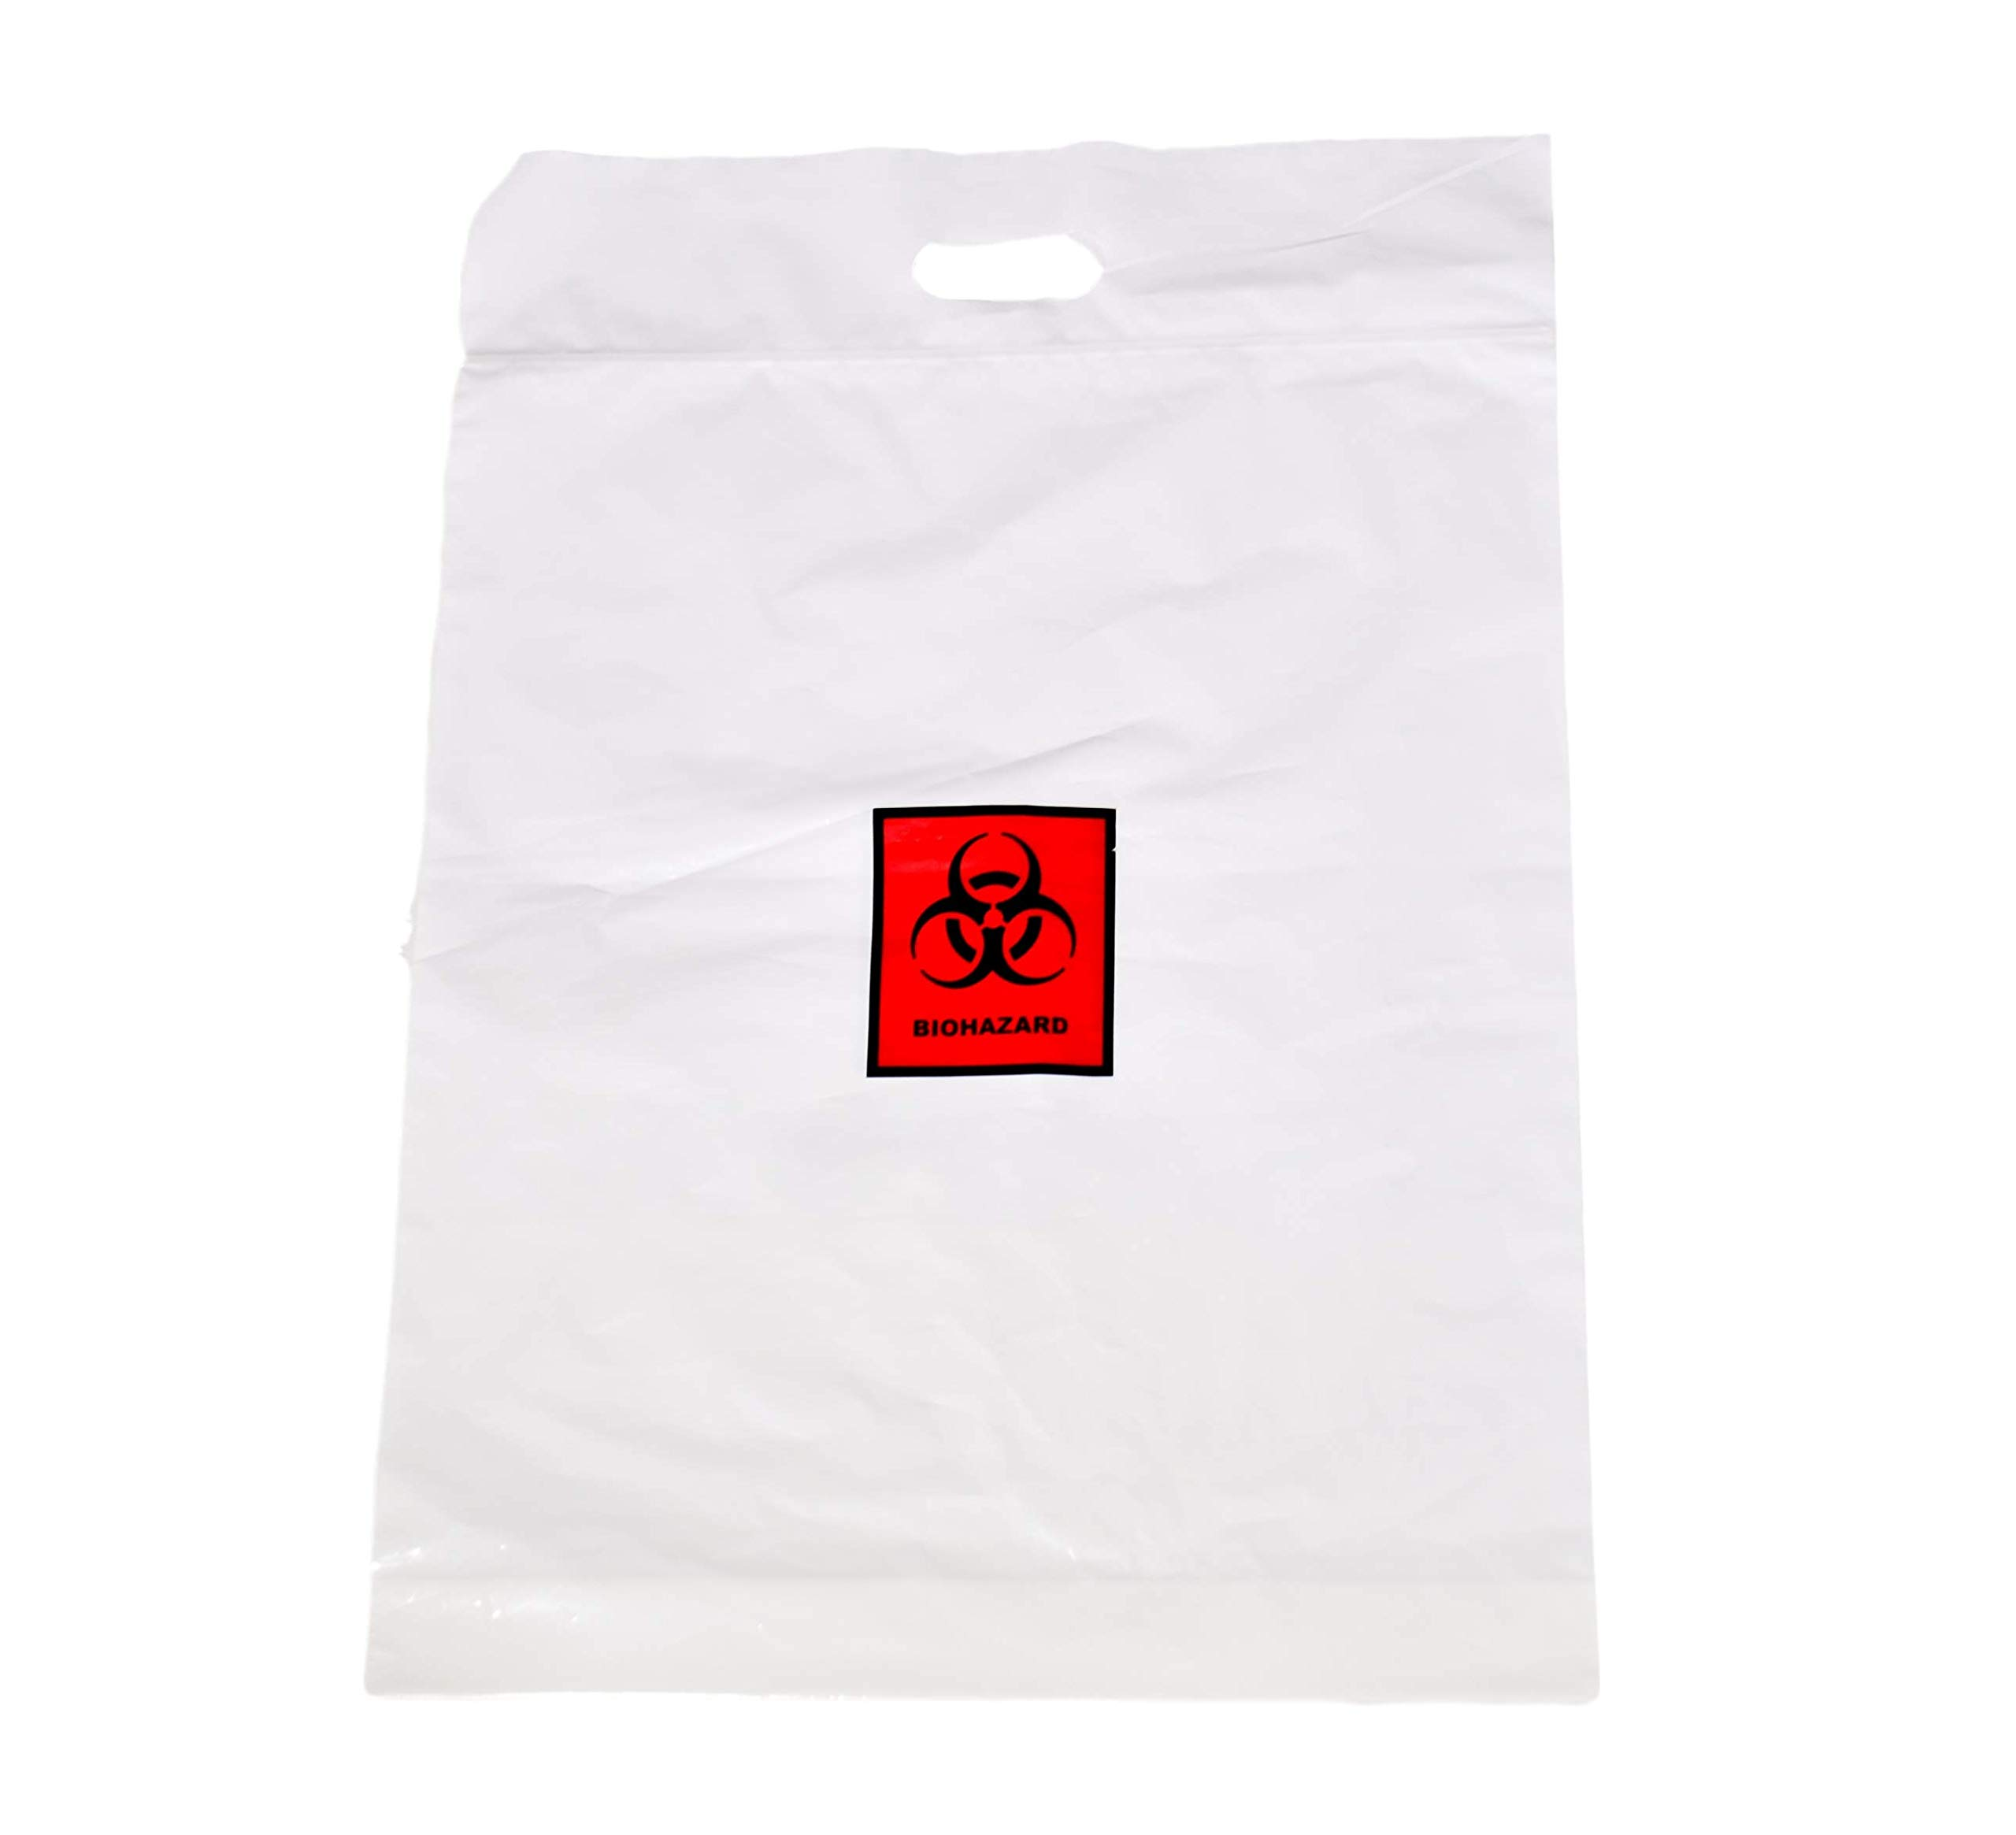 Zip Lock Bio-Hazard Bag w/Handle, 17'' x 15 1/2'' - ASP Medical